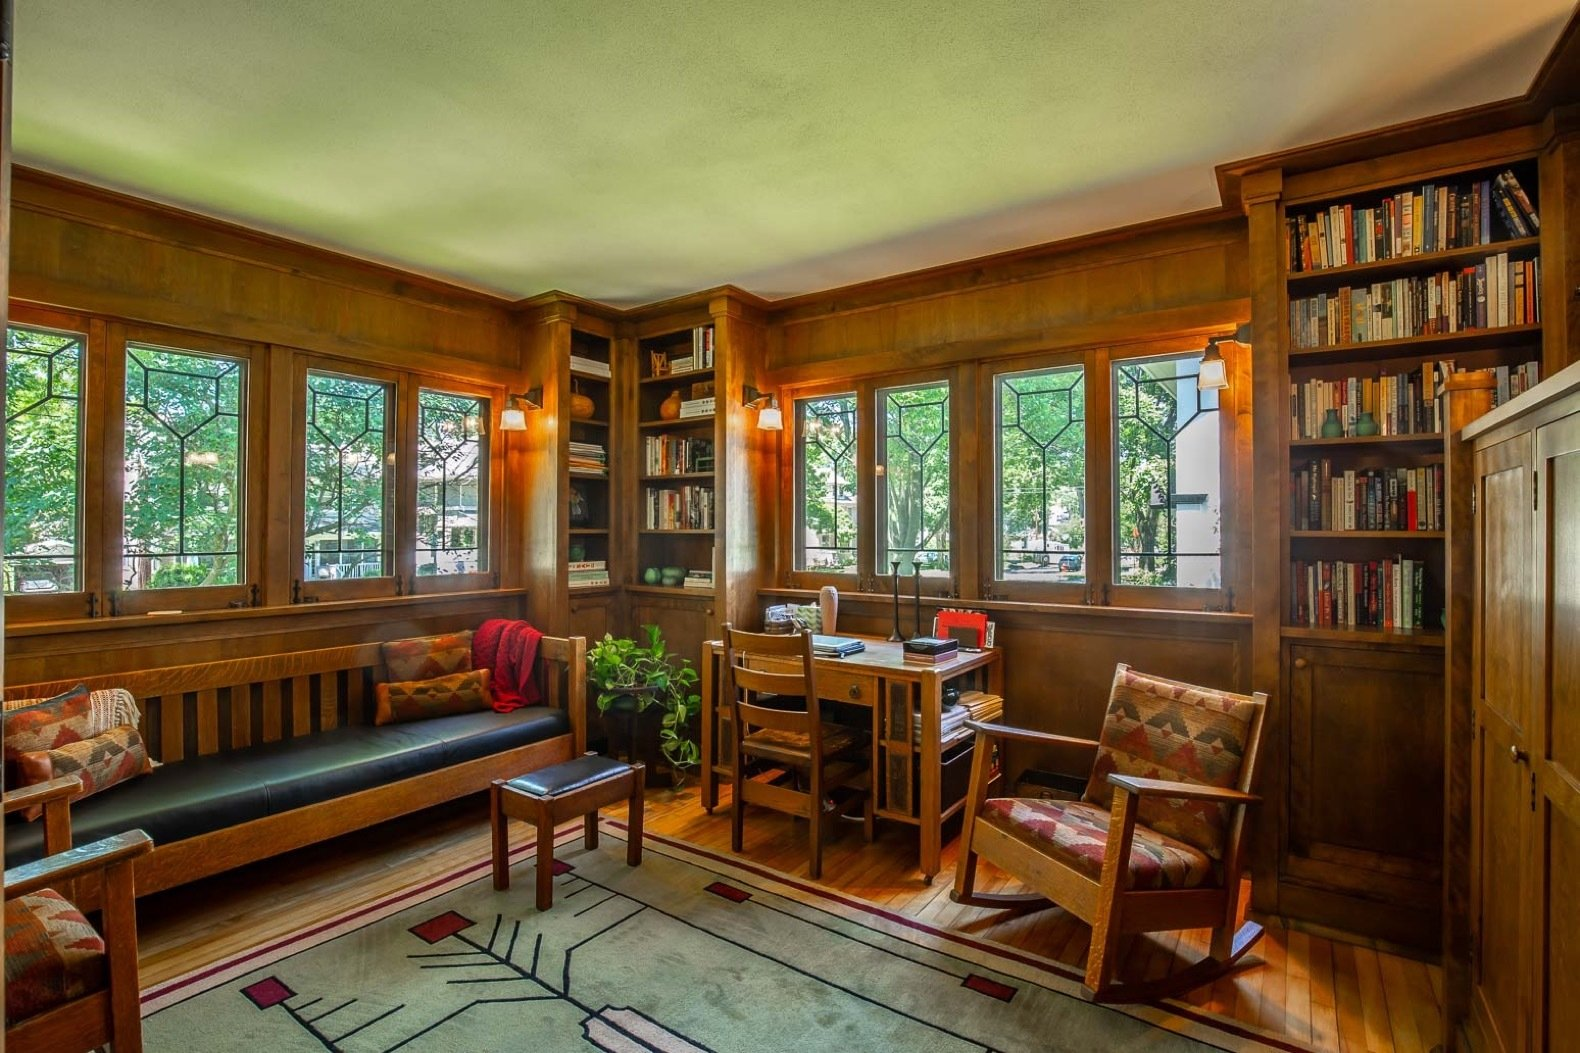 Frank Lloyd Wright Snatch Up This Rare Frank Lloyd Wright Designed Asb Home For 777k